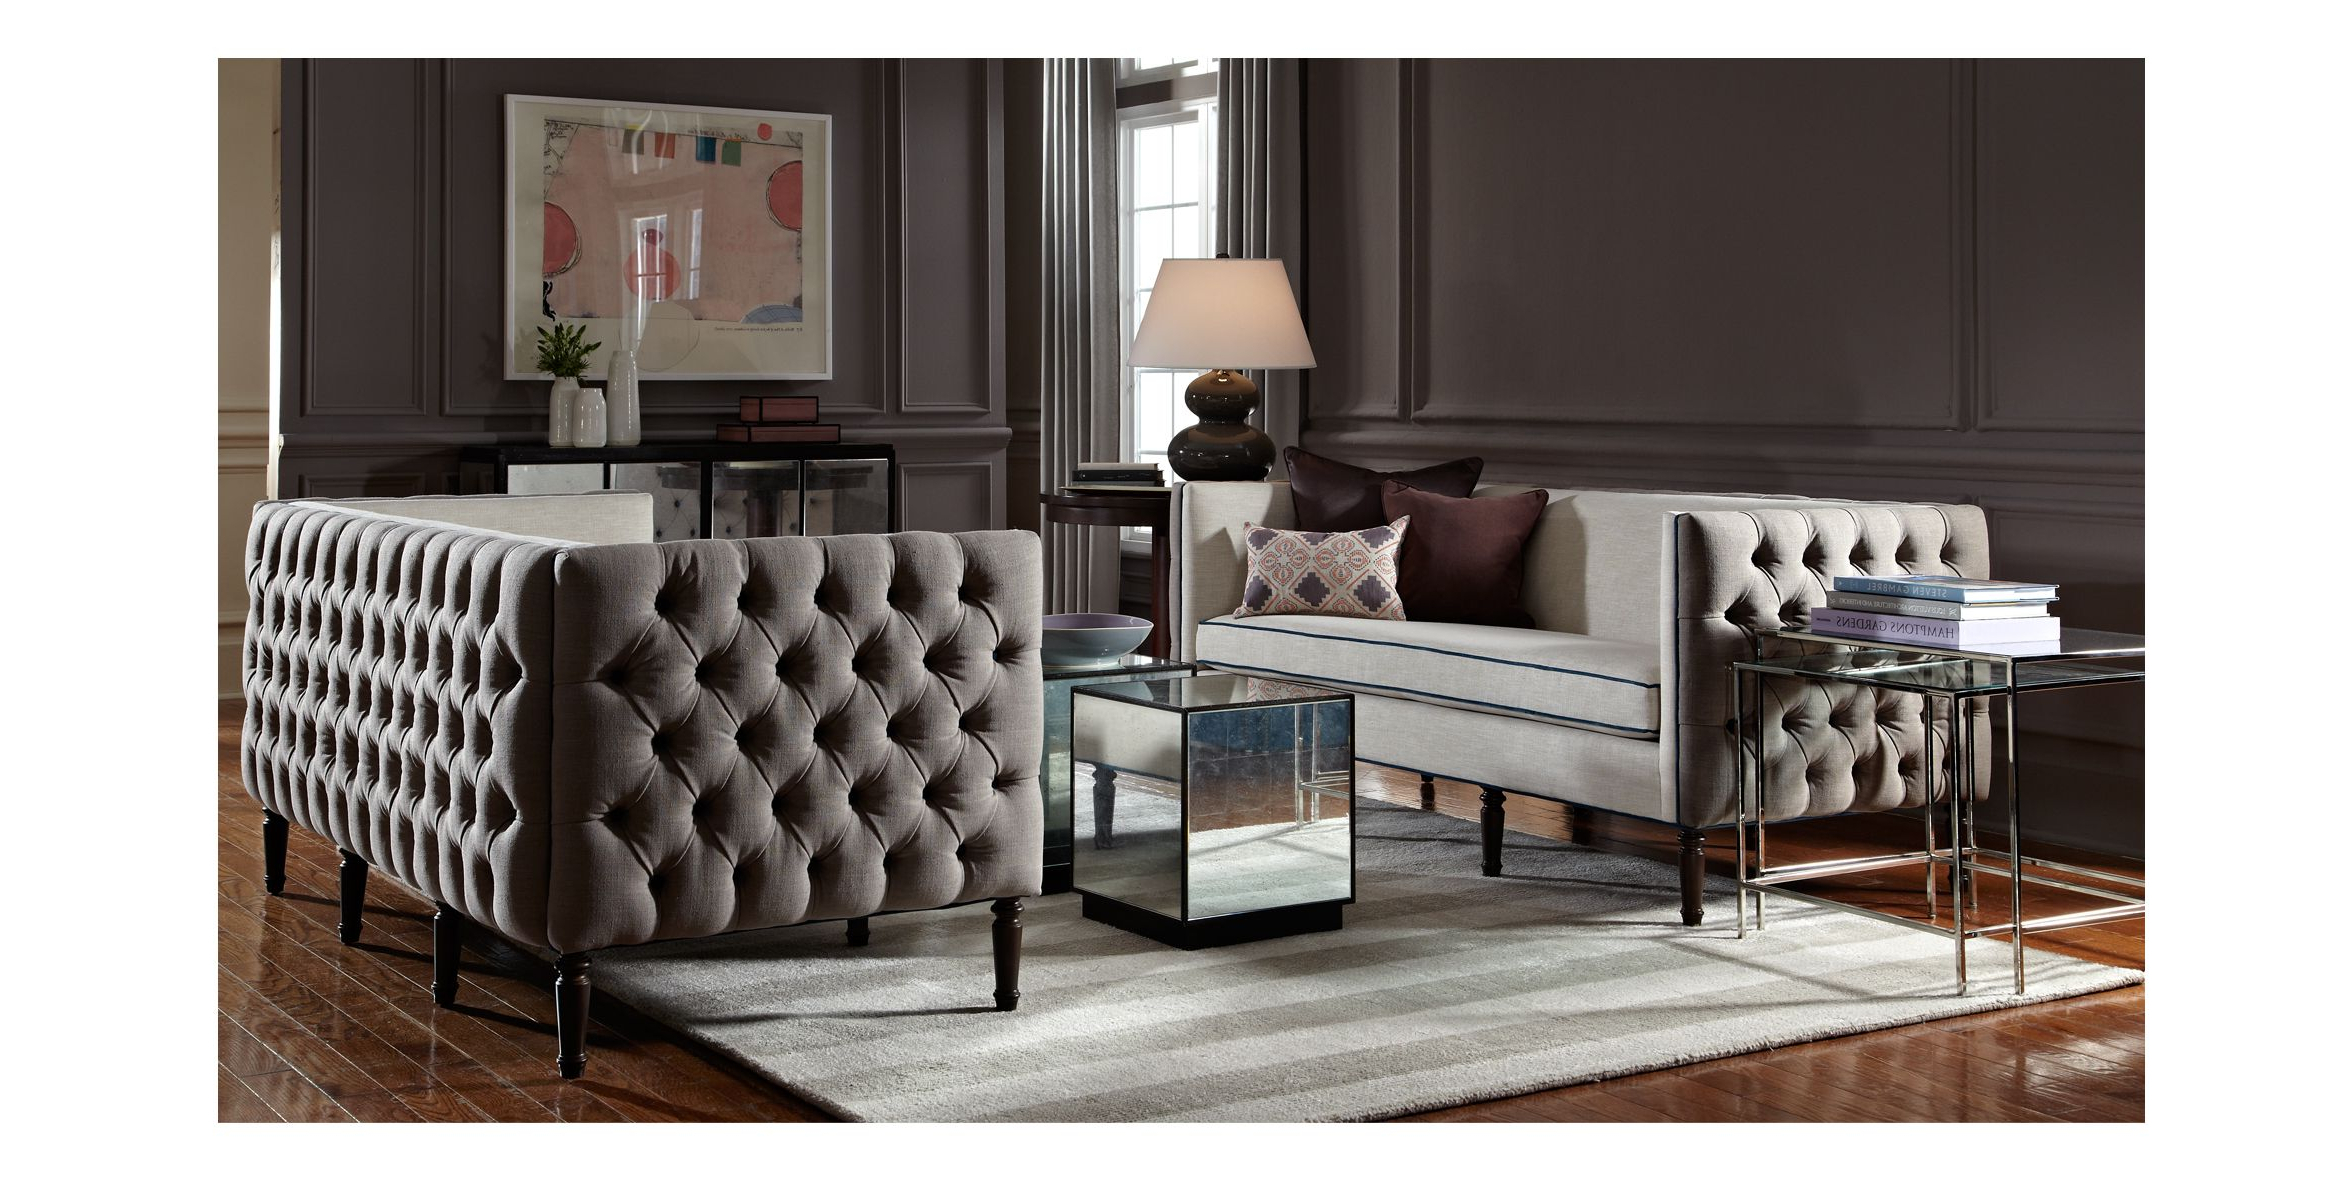 Modern Tufted Sofa – Google Search | Turn Of The Century Moderne Regarding Parsons Grey Solid Surface Top & Stainless Steel Base 48X16 Console Tables (Gallery 12 of 20)